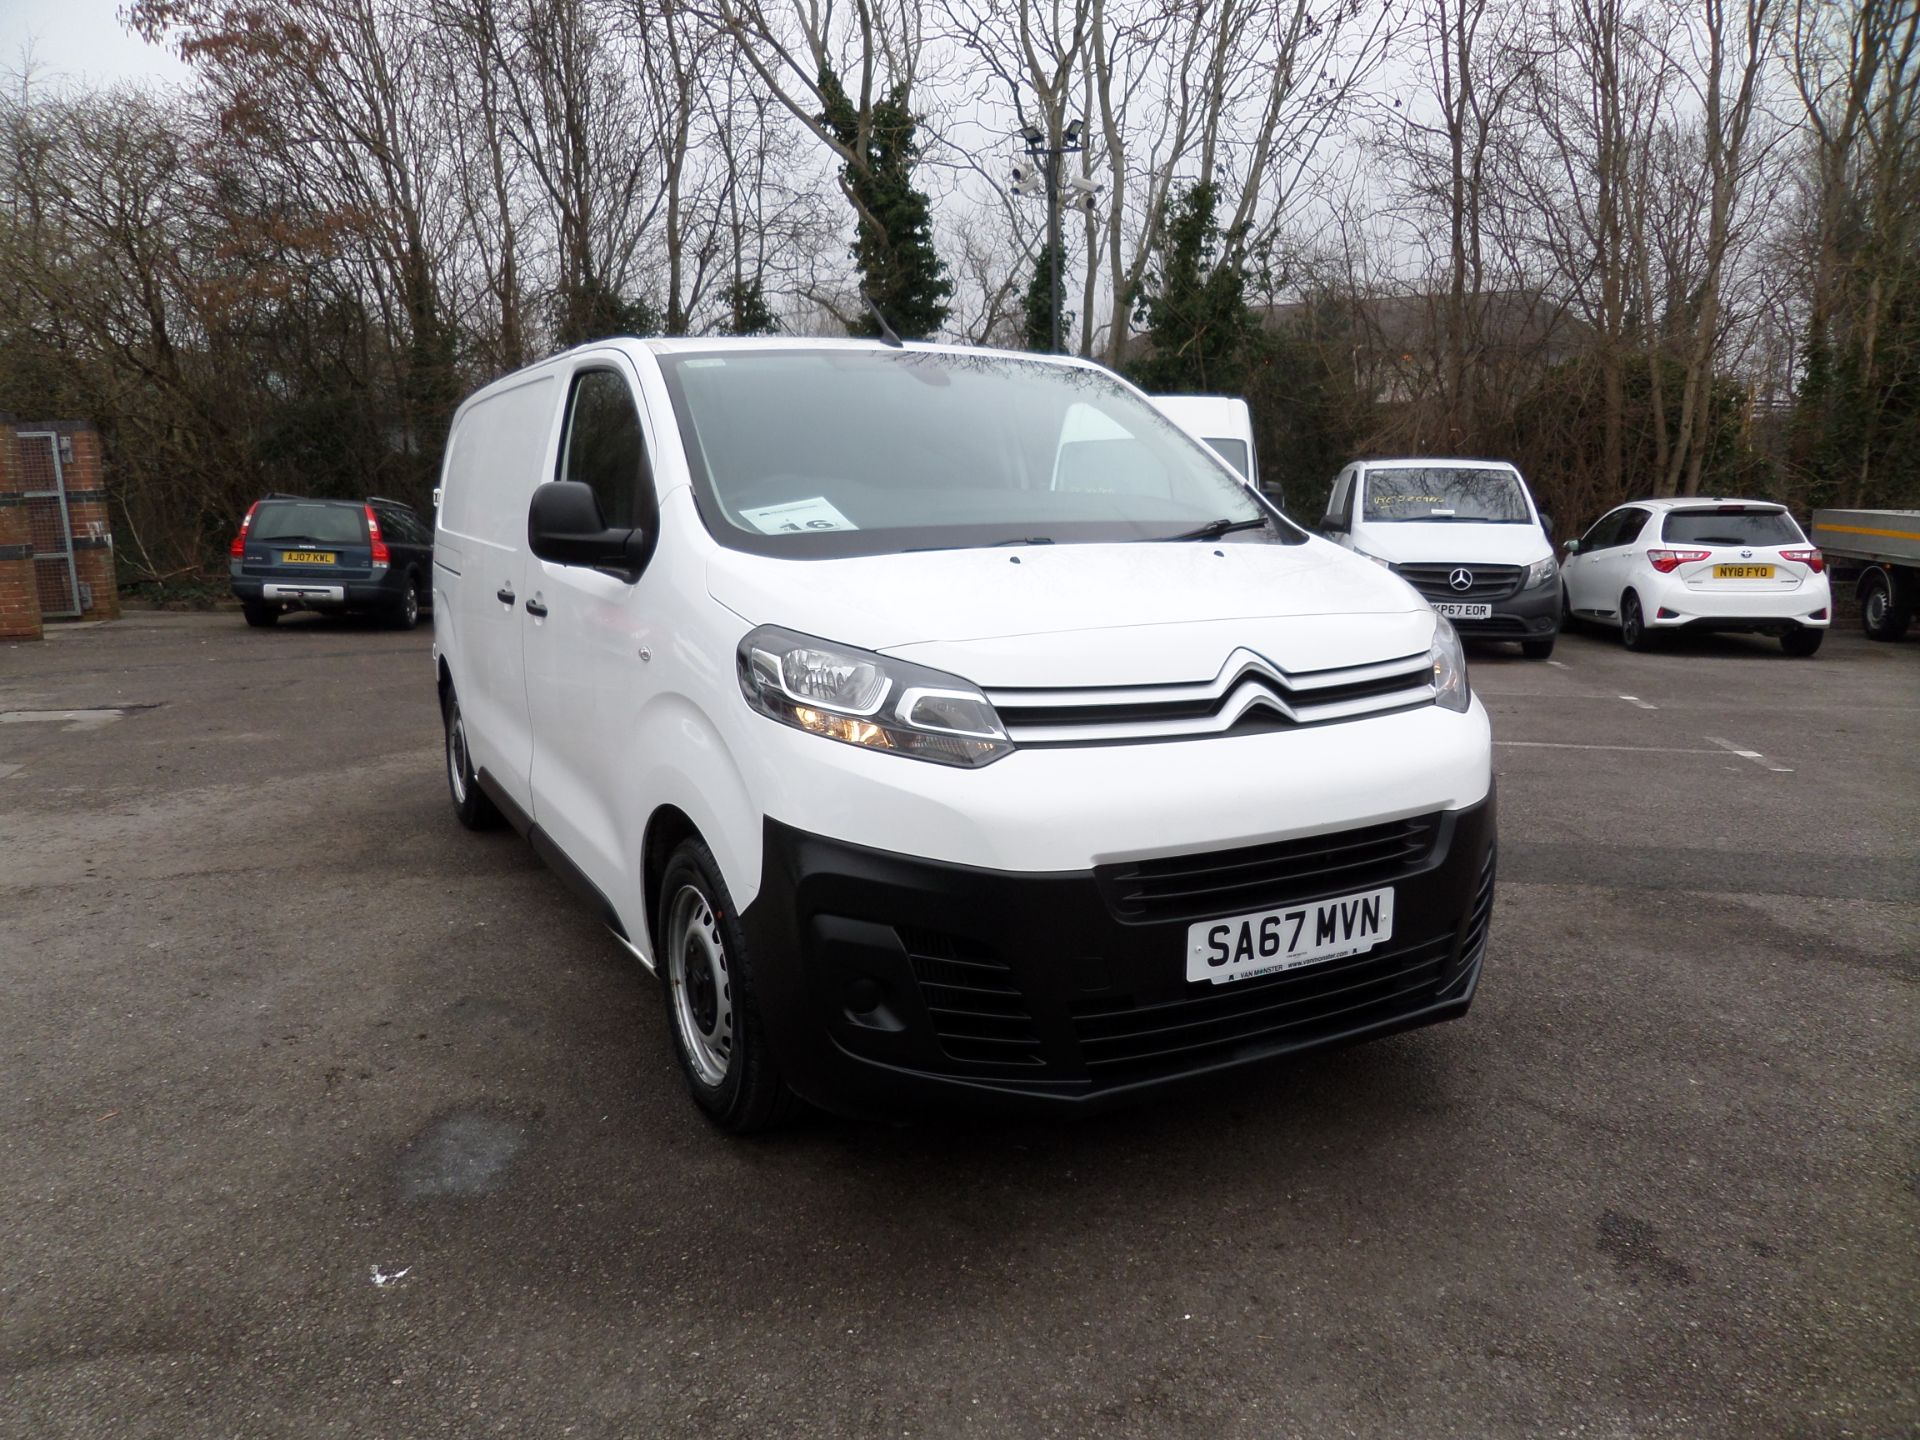 2017 Citroen Dispatch 1000 1.6 Bluehdi 115 Van Enterprise Euro 6 (SA67MVN)